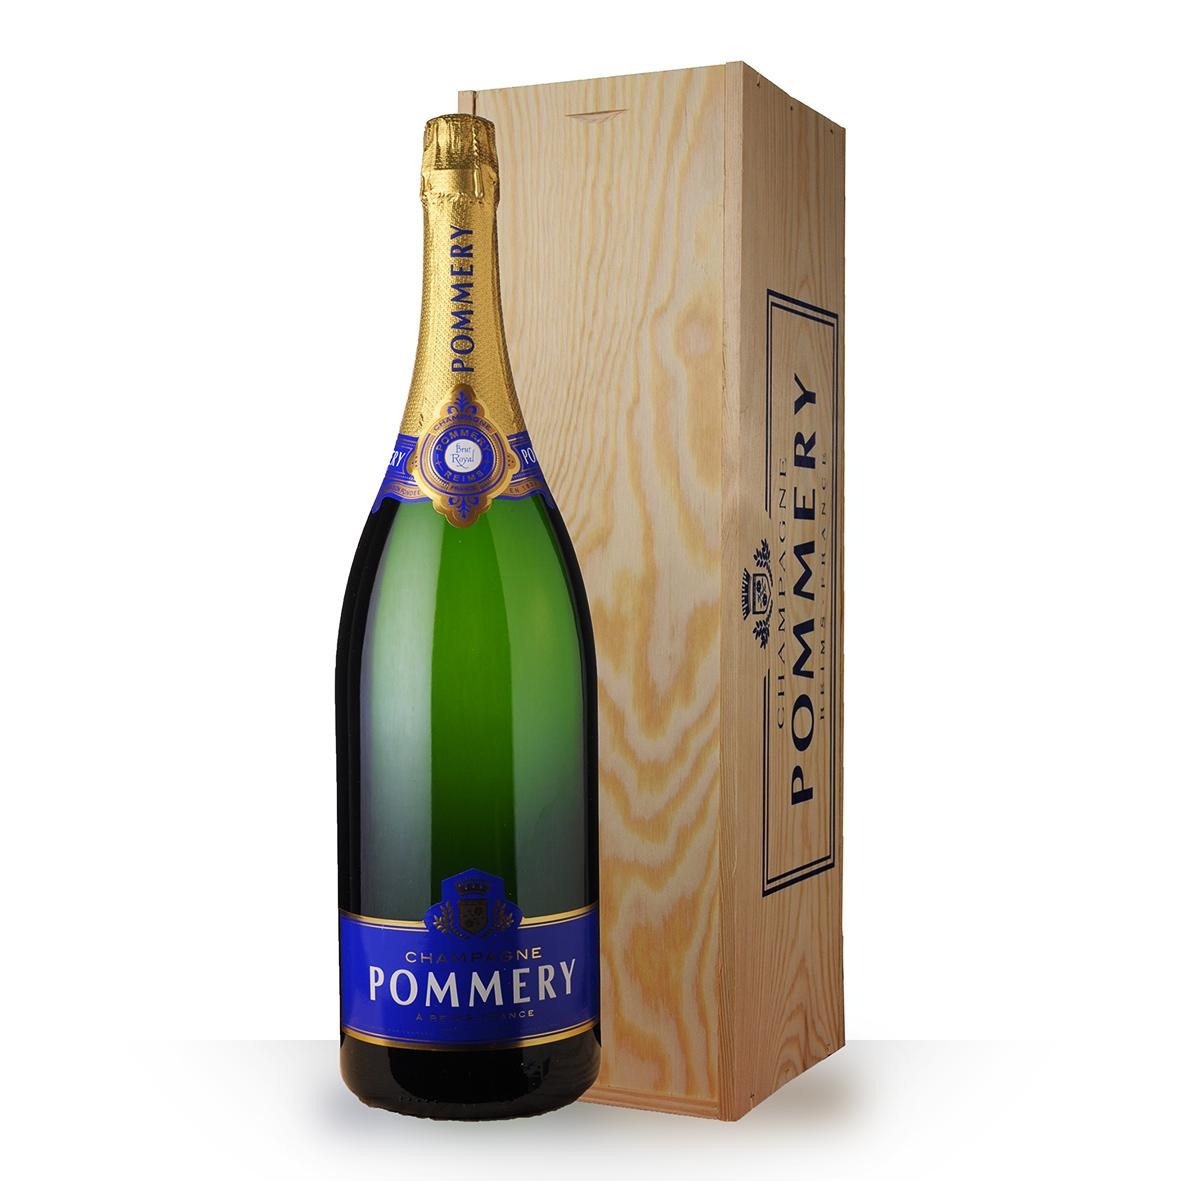 buy pommery brut caisse bois jeroboam at uvinum. Black Bedroom Furniture Sets. Home Design Ideas